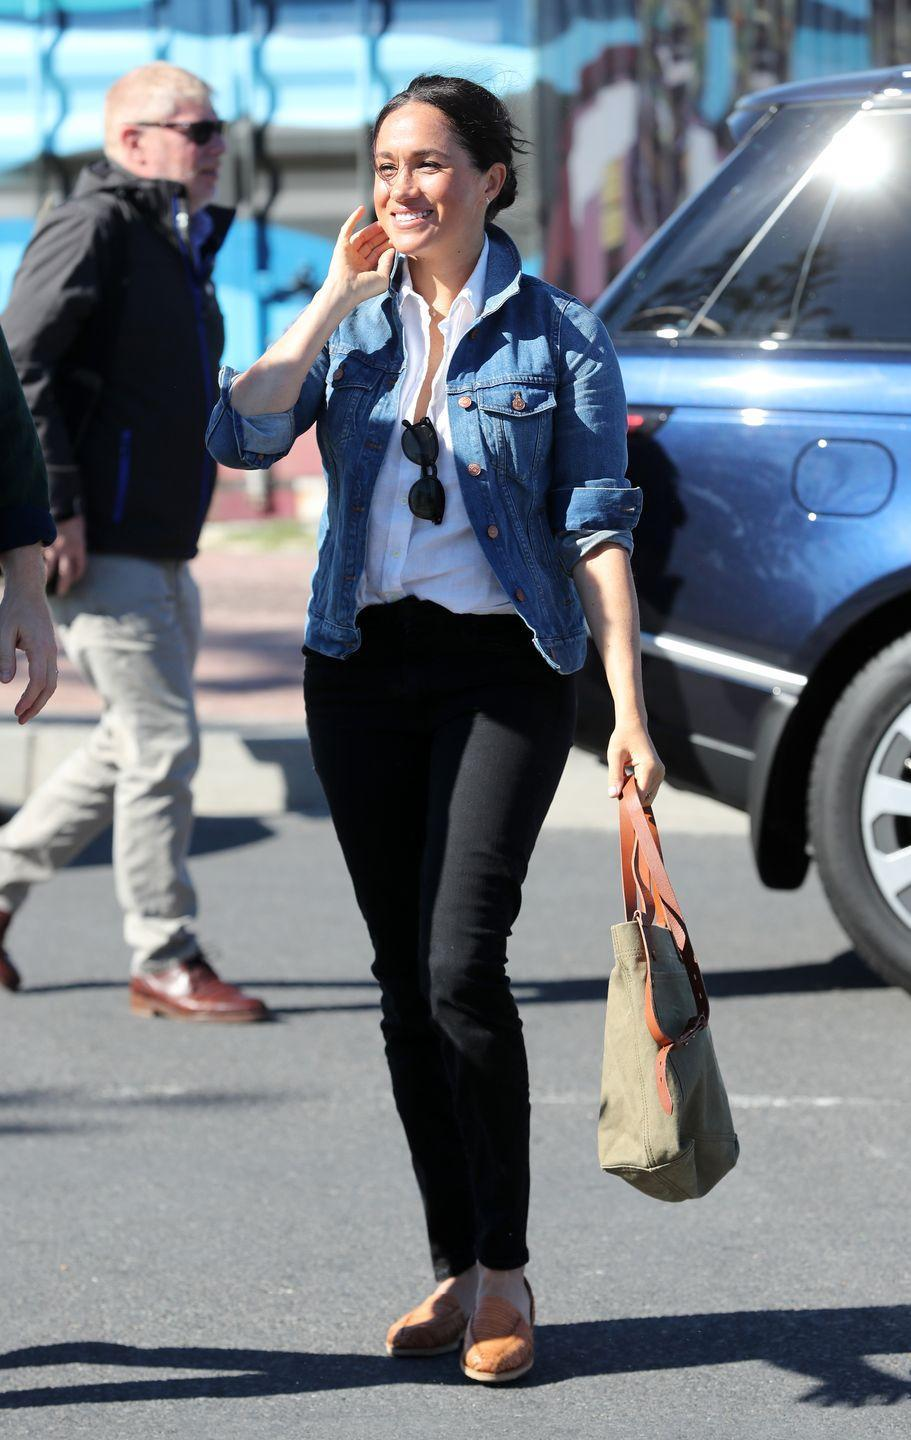 <p>On a visit to South Africa in 2019, Meghan Markle wore a fuss-free casual look of black skinny jeans, an unbuttoned Oxford shirt, and a denim jacket with the sleeves pushed up. Her timeless sunnies, leather flats, and canvas tote pulled it all together. </p>